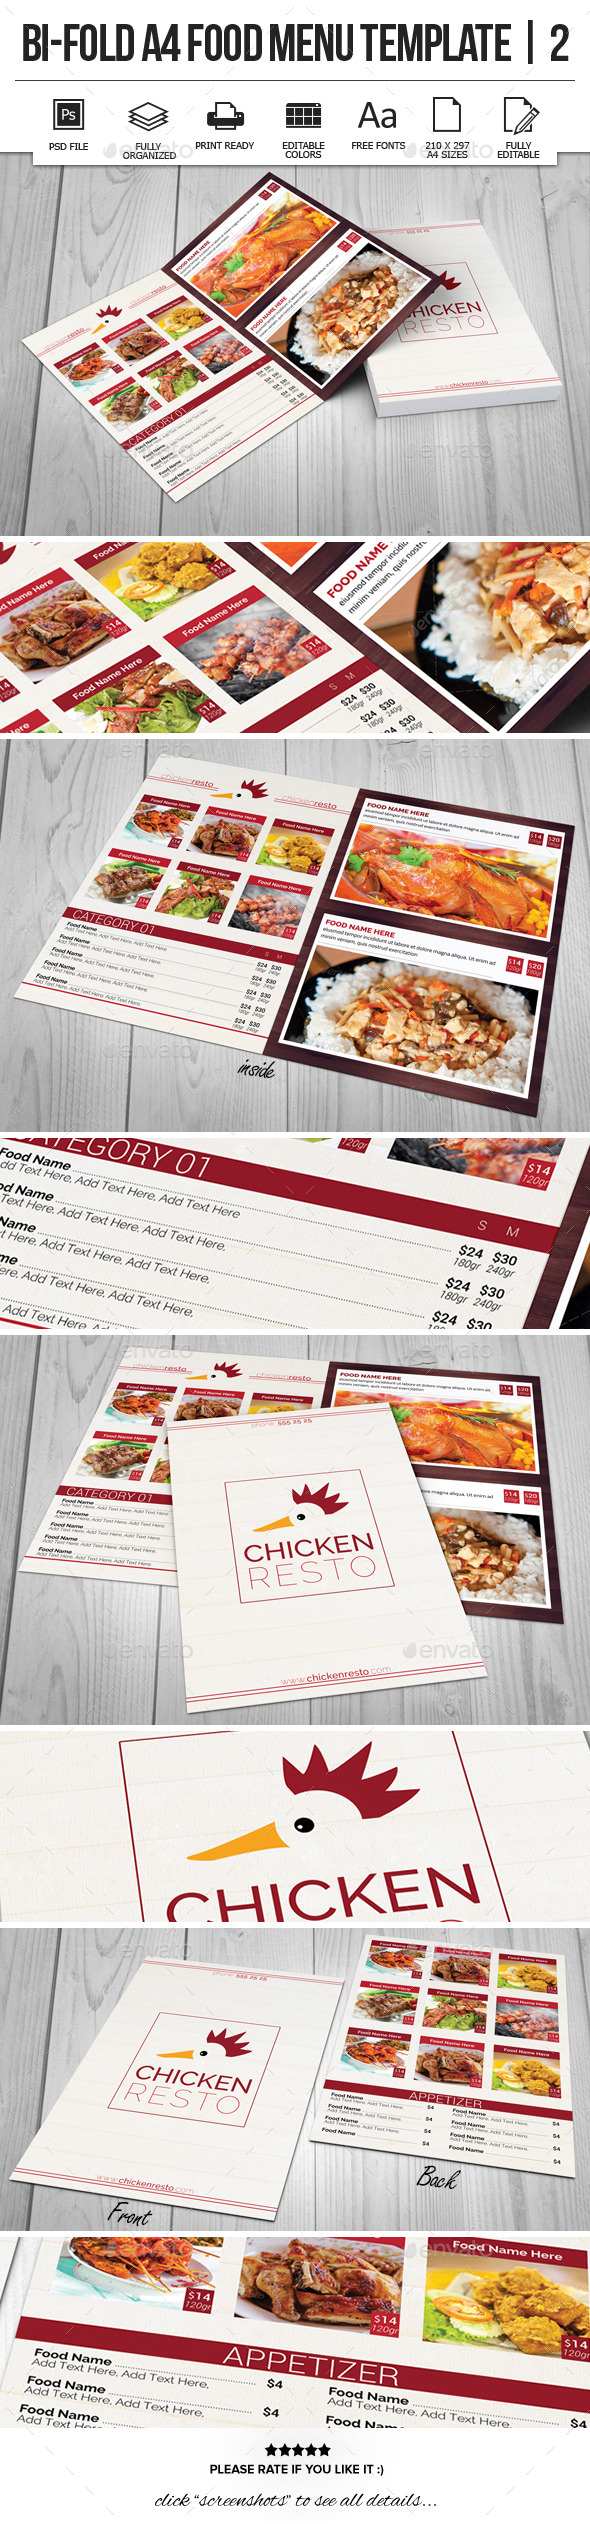 Bi-Fold A4 Food Menu Template | 2 - Food Menus Print Templates